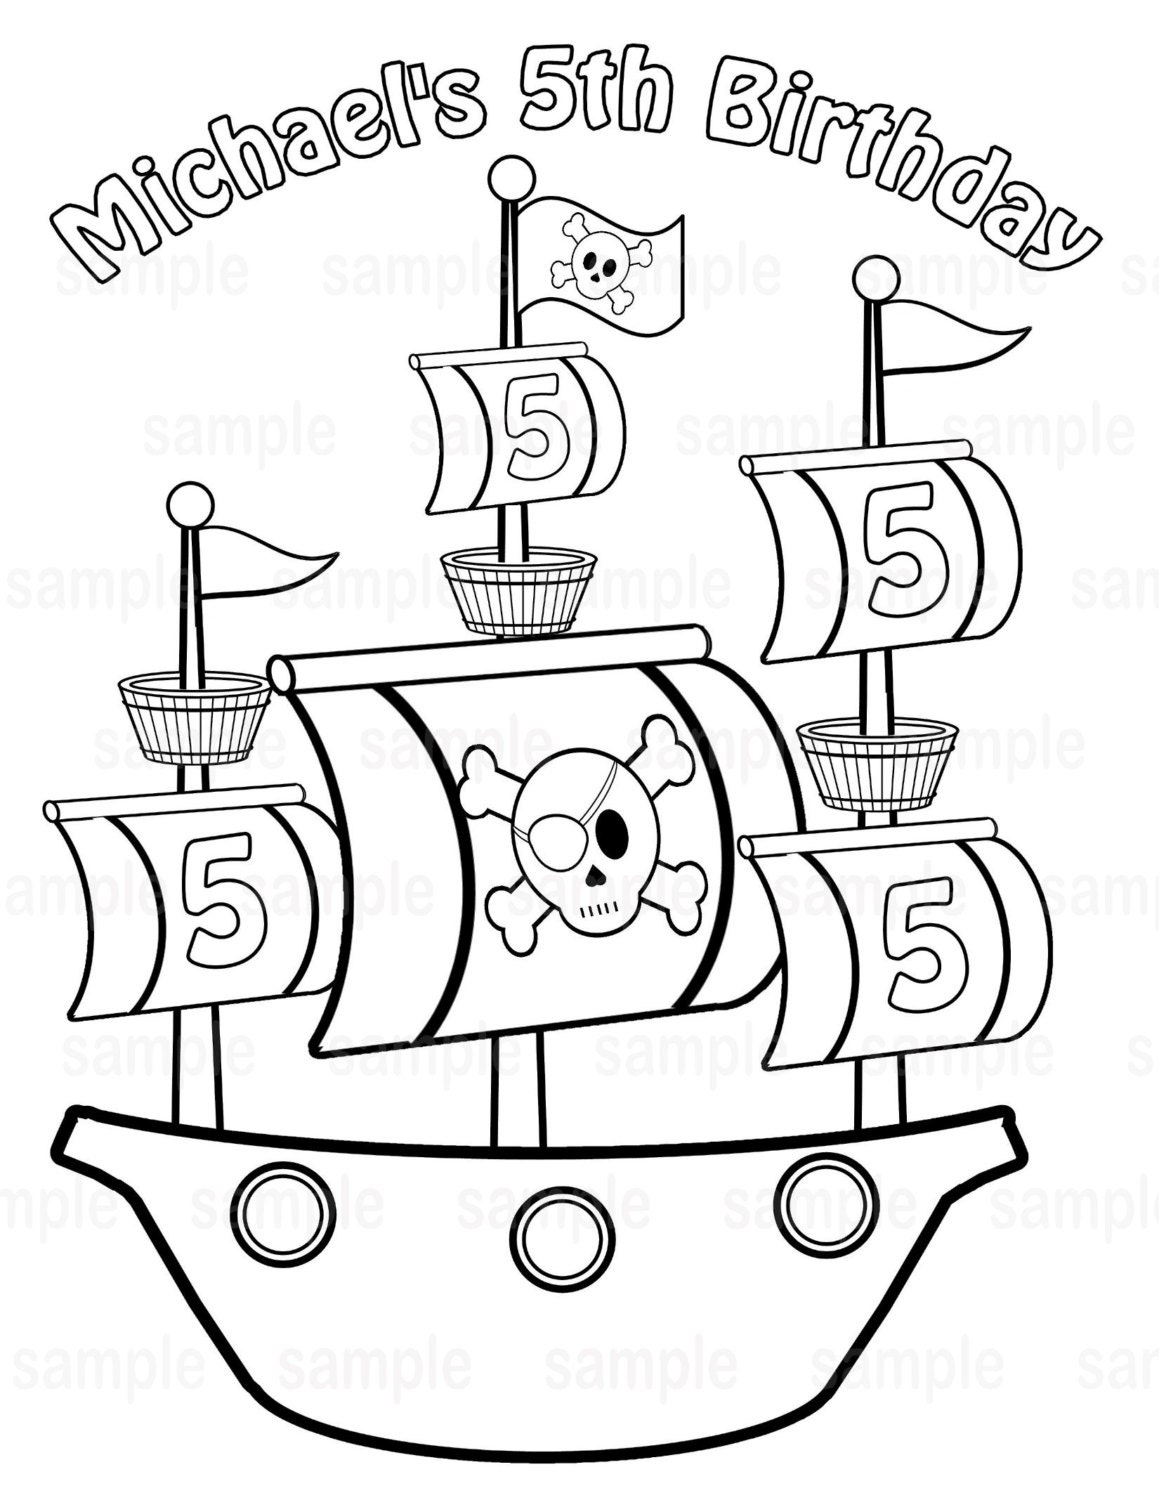 sunken ship adult coloring page auto electrical wiring diagramsunken pirate ship coloring pages